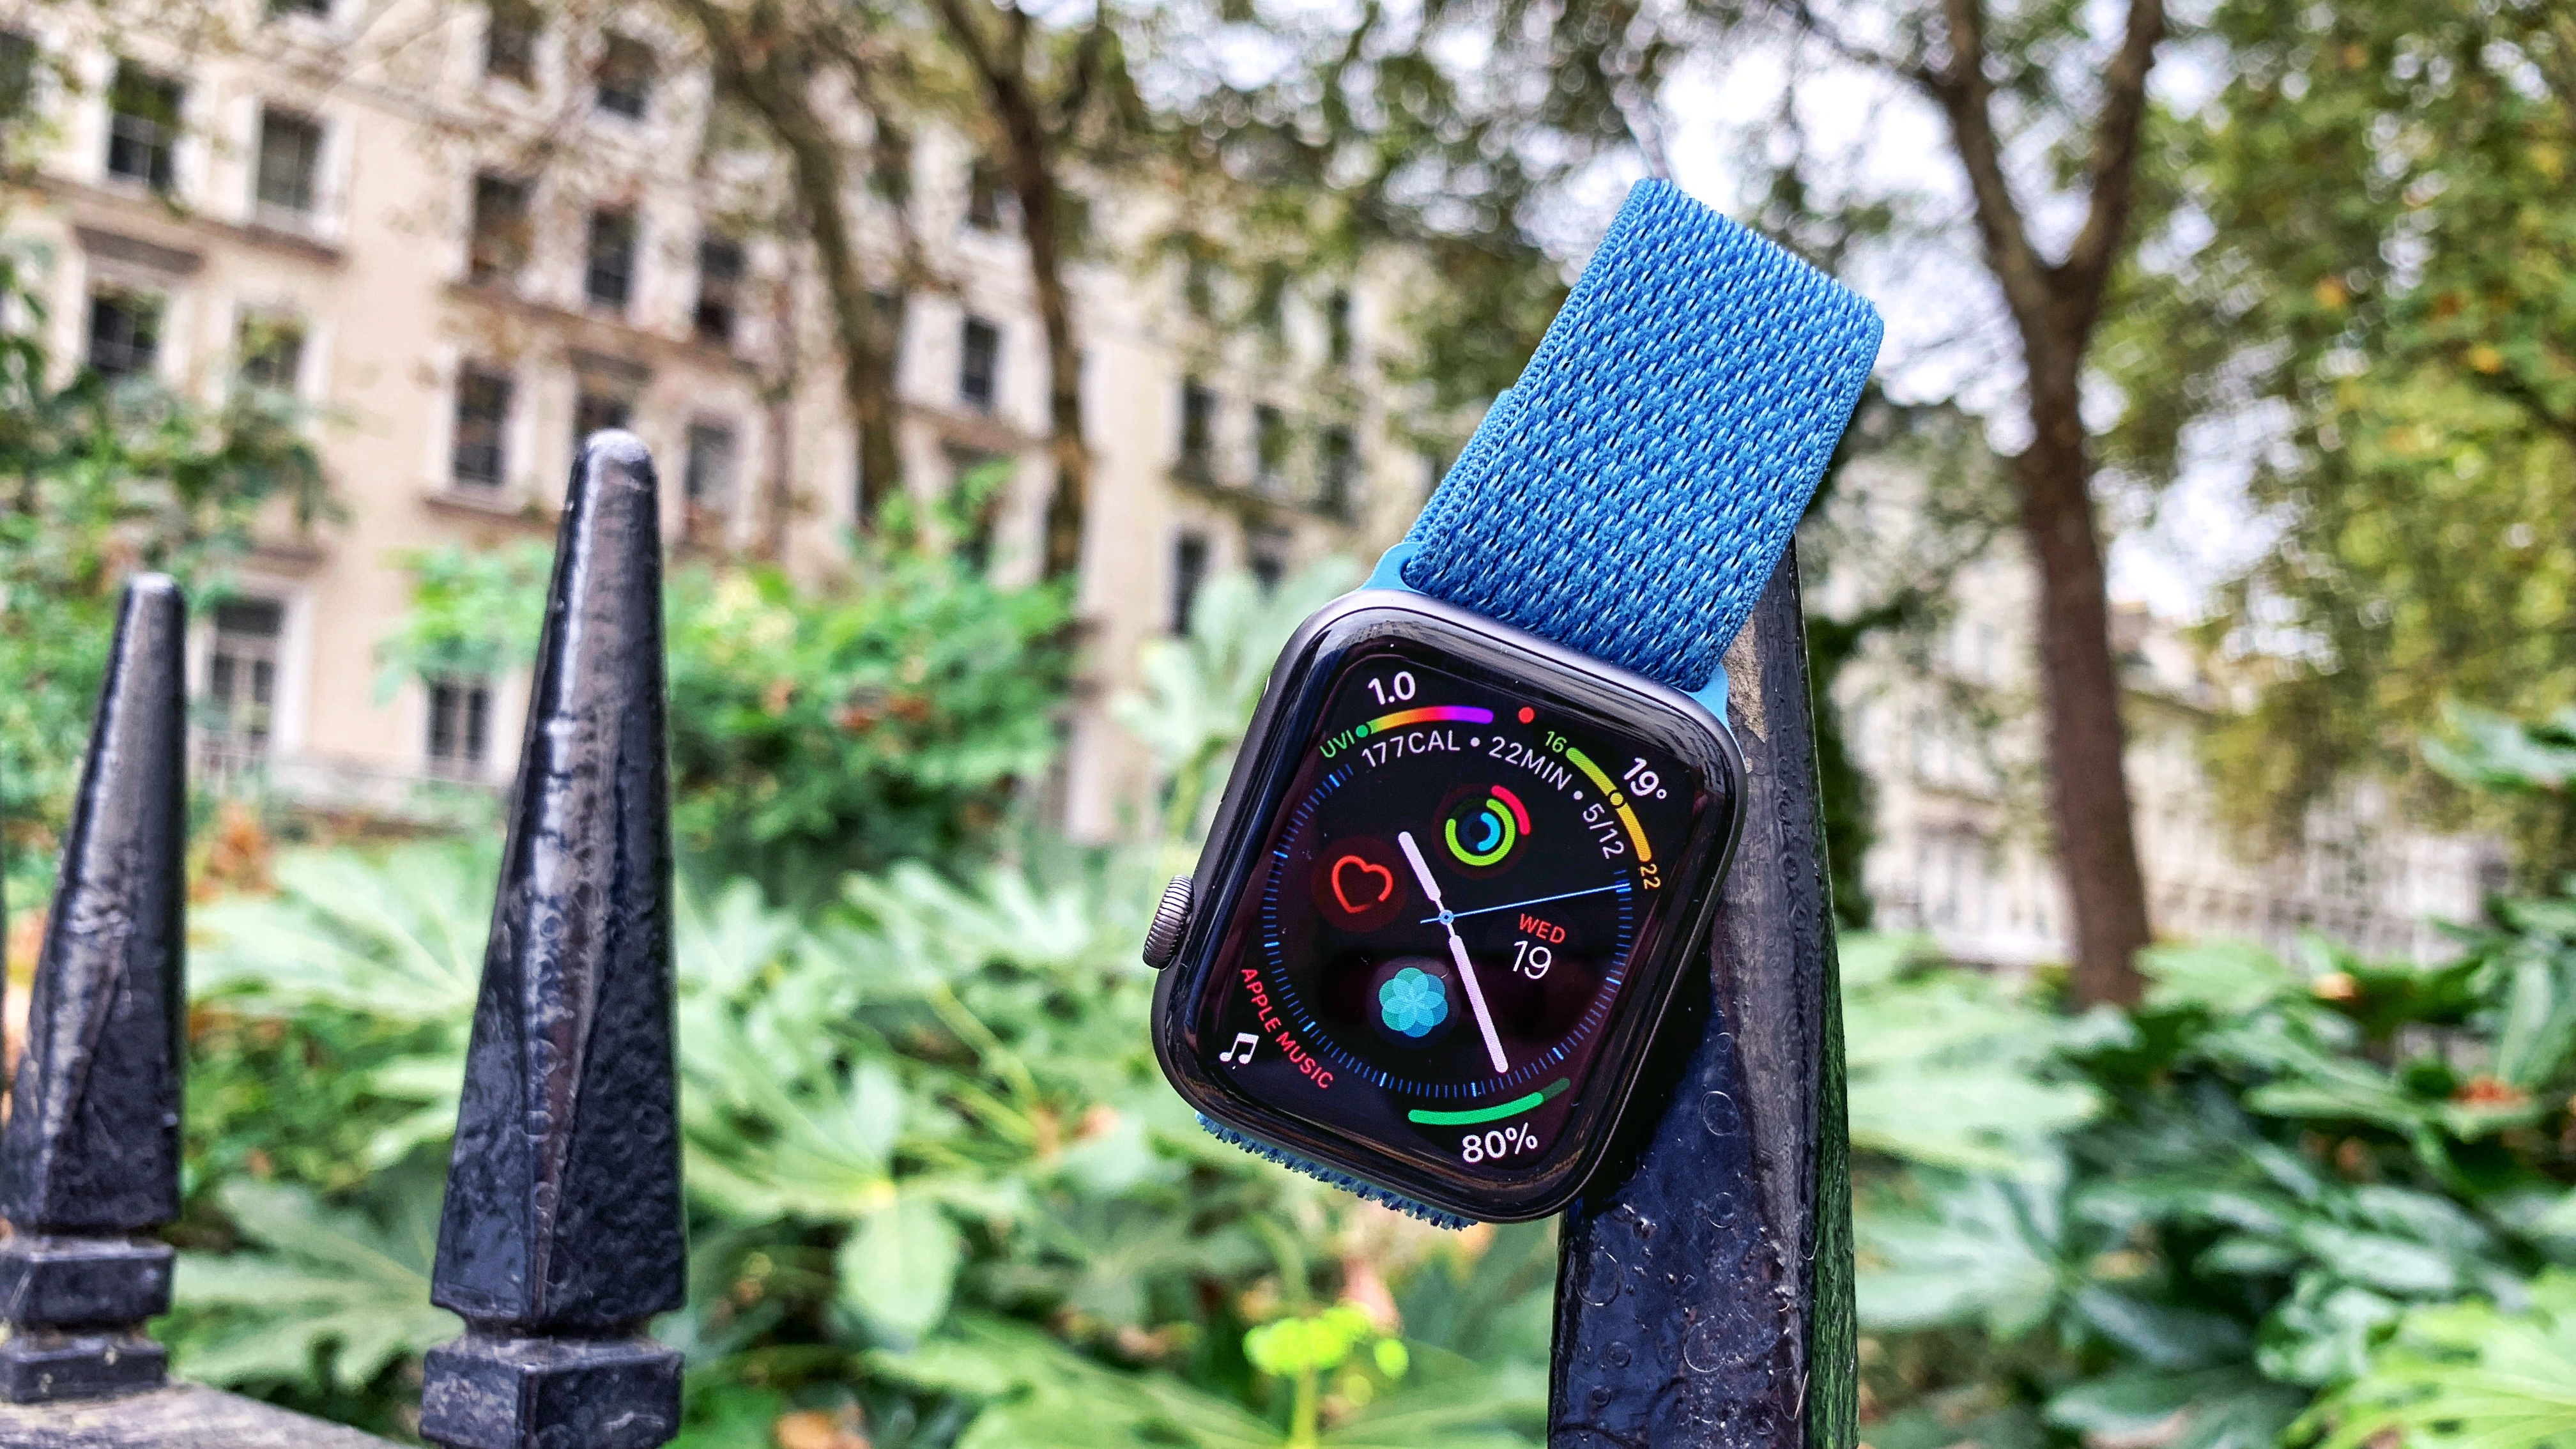 d5e244d9fd7c Apple Watch 5 release date, price, news and leaks | TechRadar